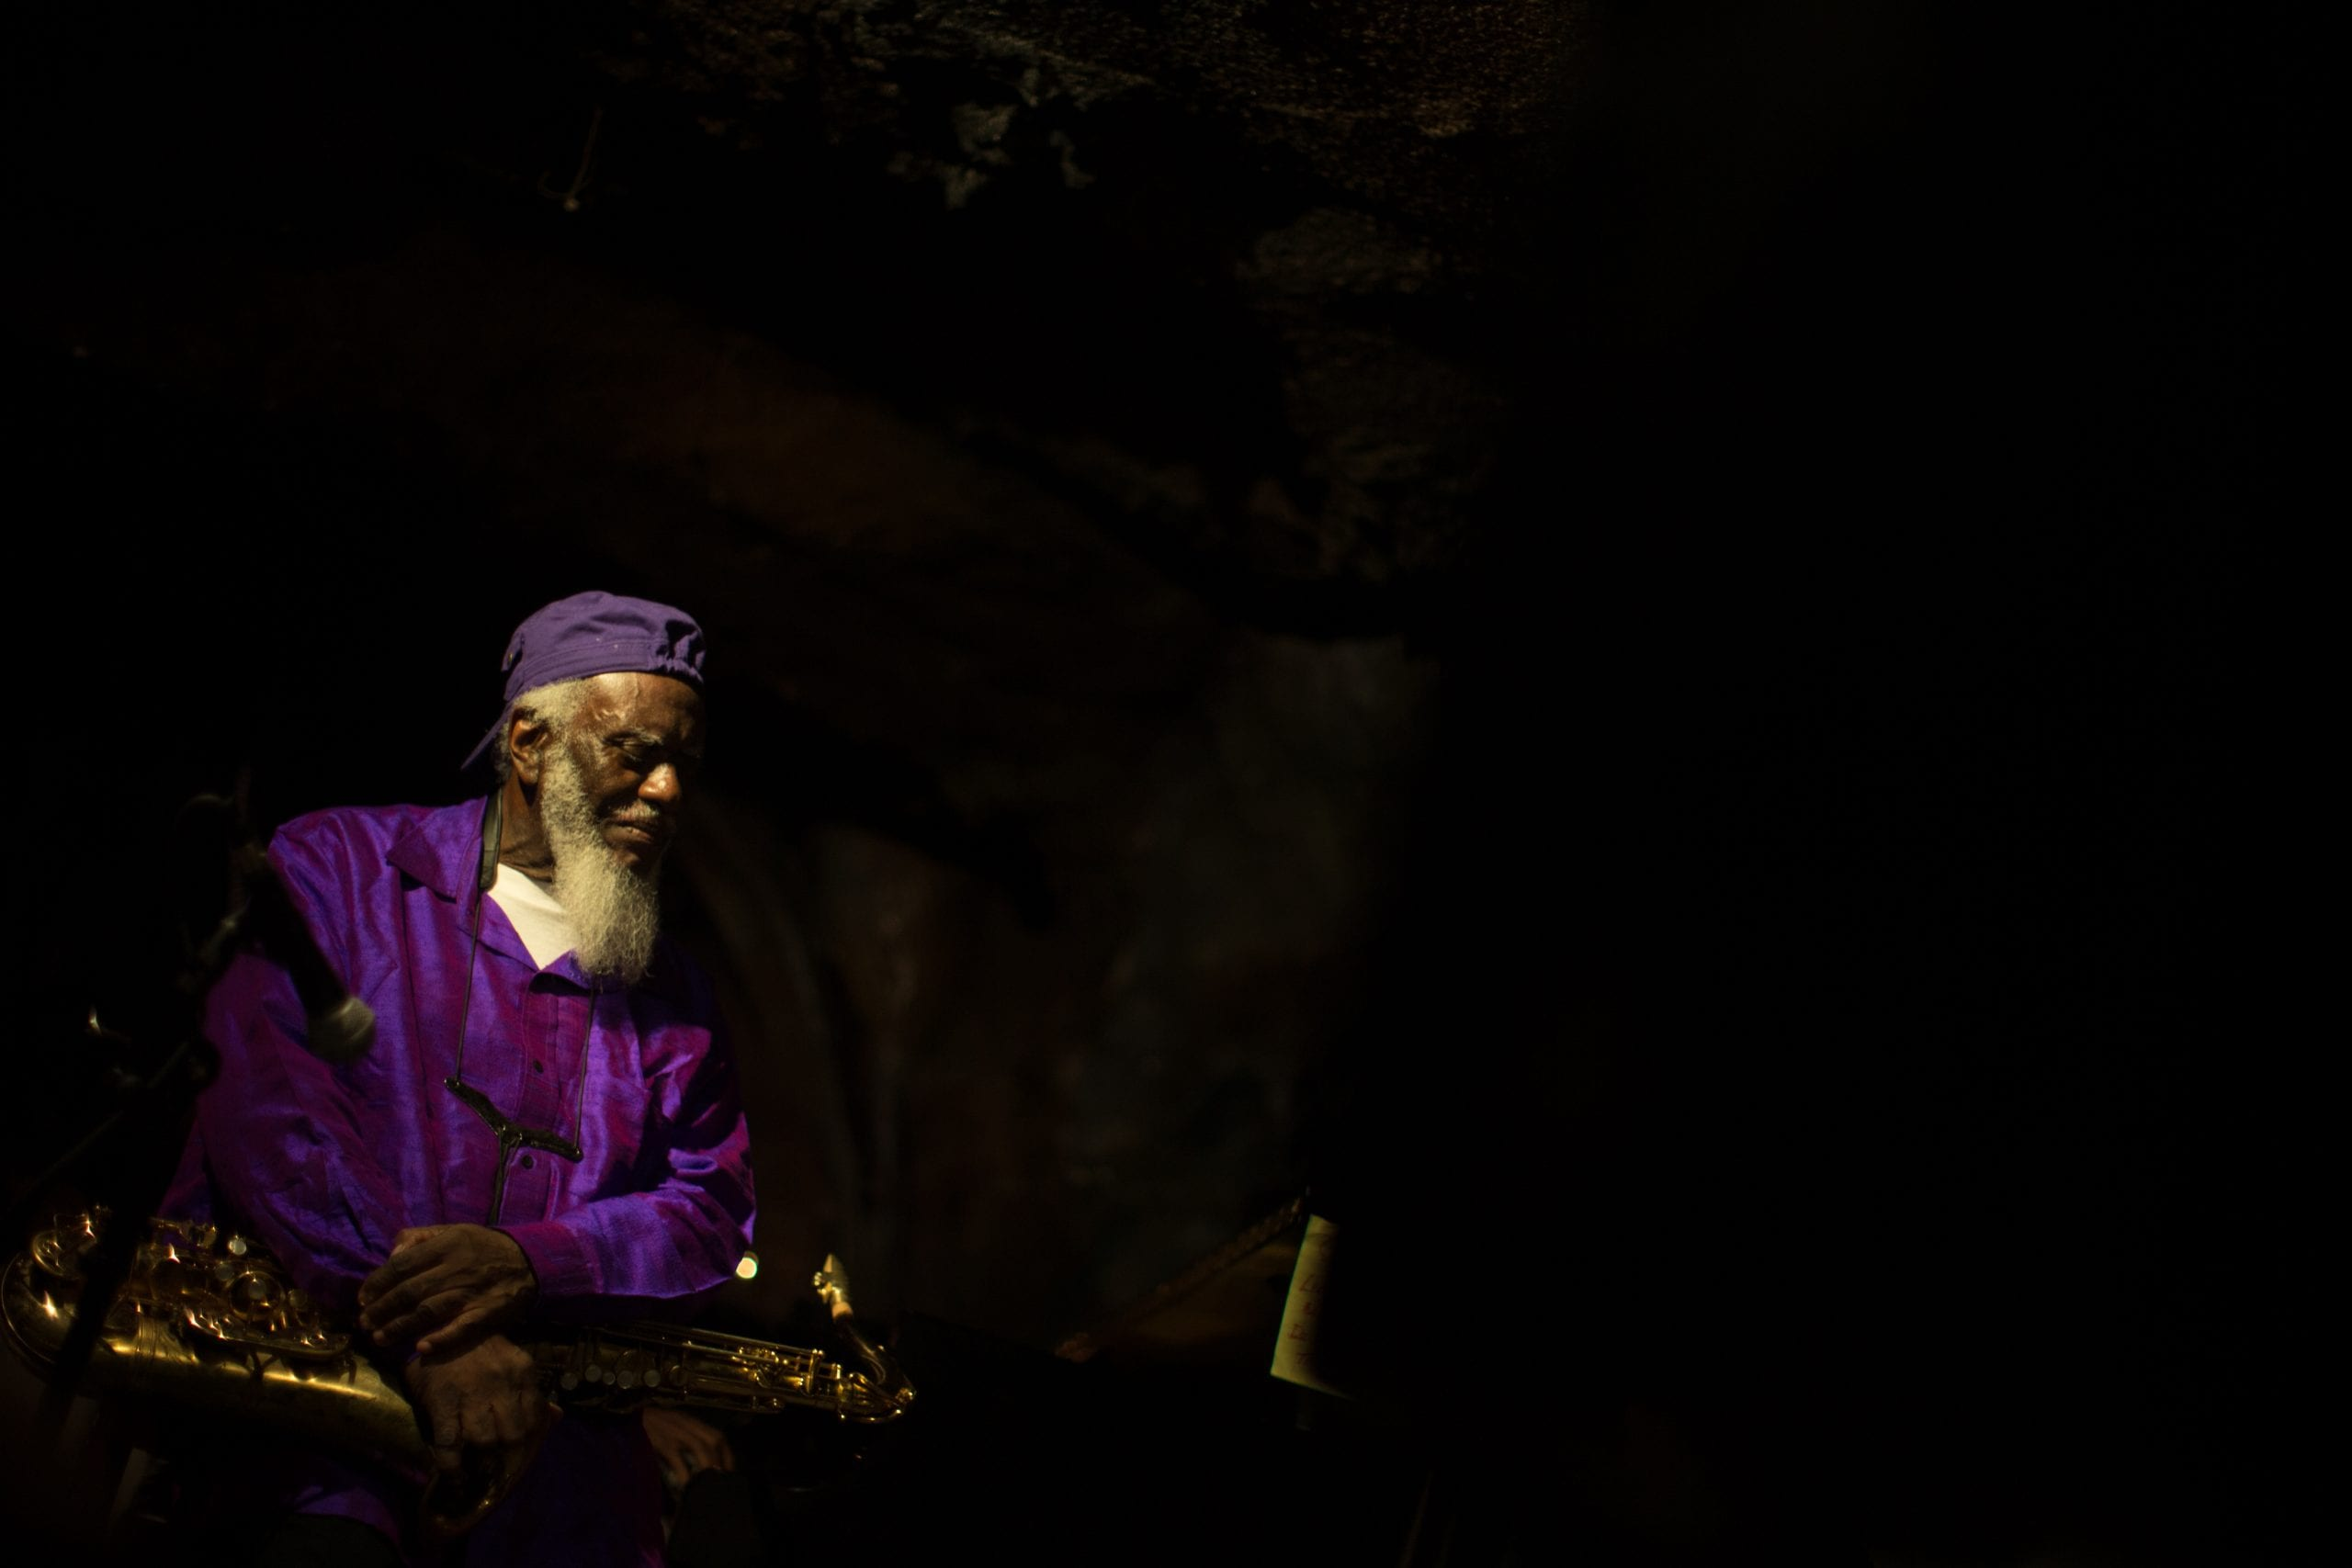 Pharoah Sanders performs at Bohemian Caverns. David L. McDuffie/CapitalBop